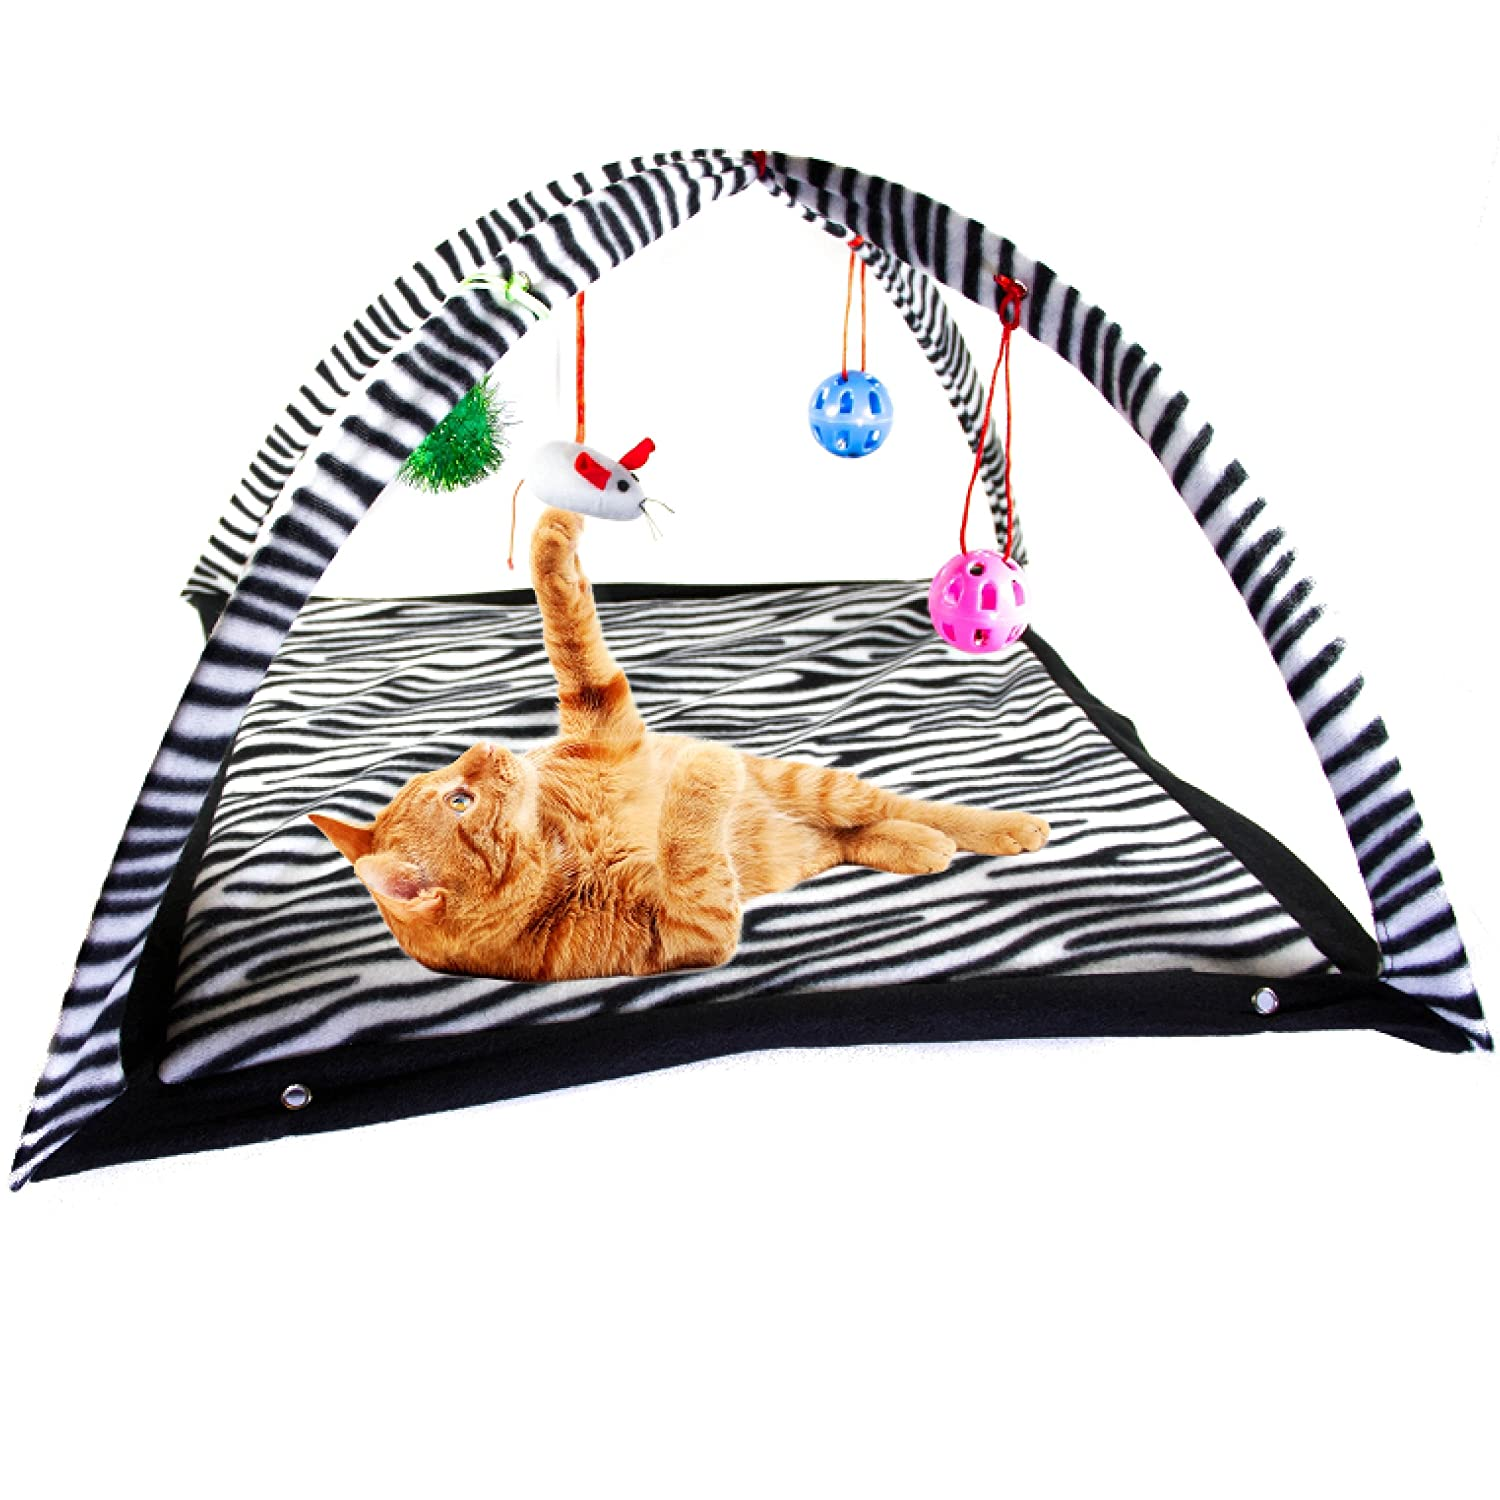 Cat Activity Center with Hanging Toy Balls, Mice & More FREE Bonus Cat Collar Helps Cats Get Exercise & Stay Active Best Cat Toys on Amazon by BigUpBrands